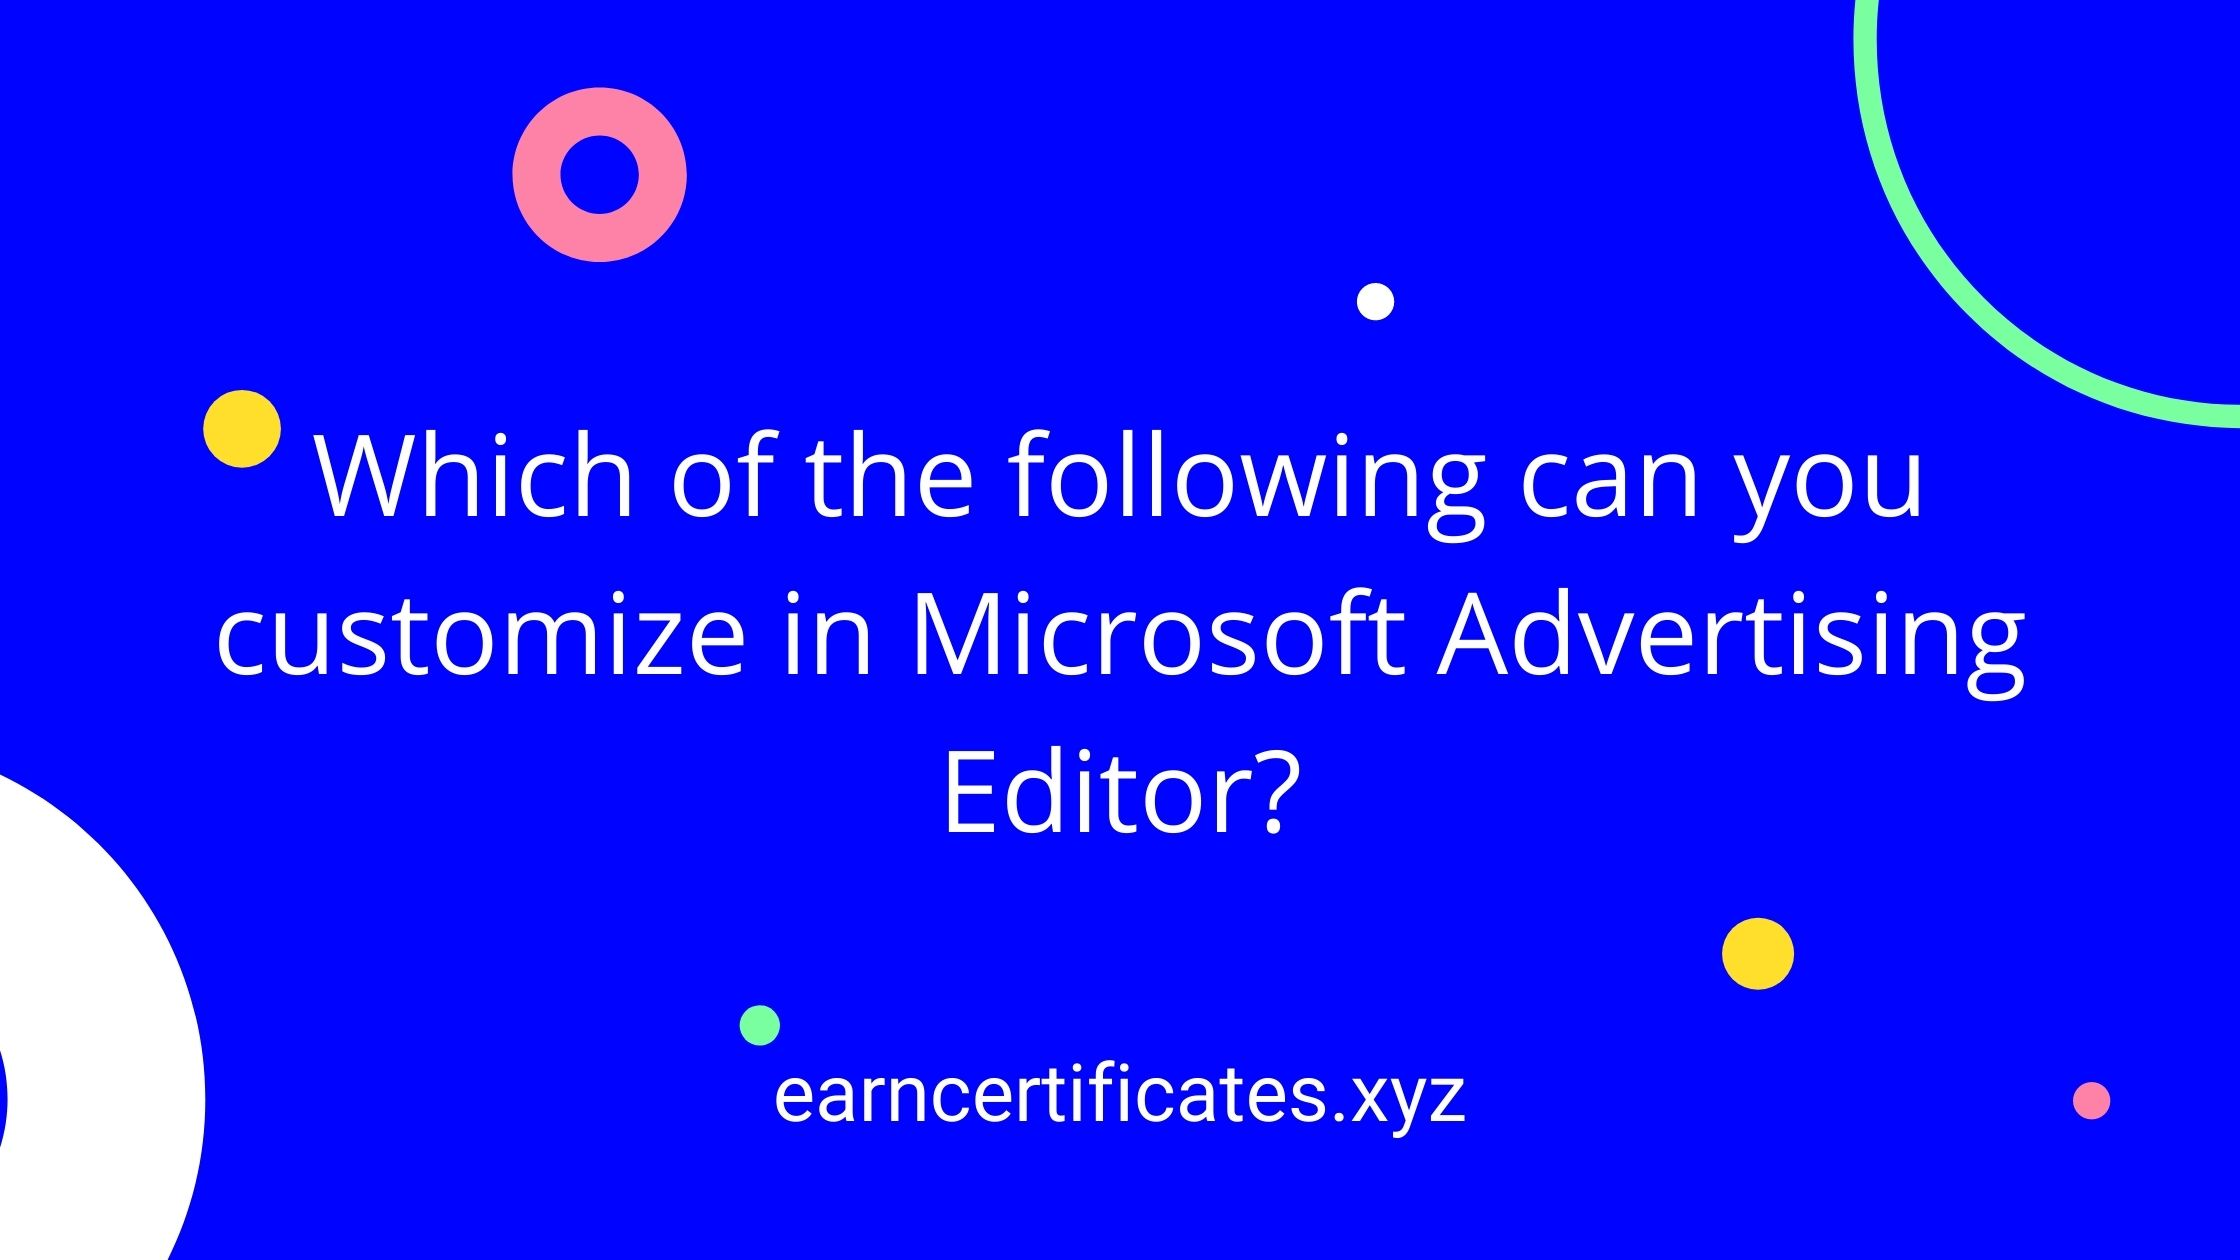 Which of the following can you customize in Microsoft Advertising Editor?